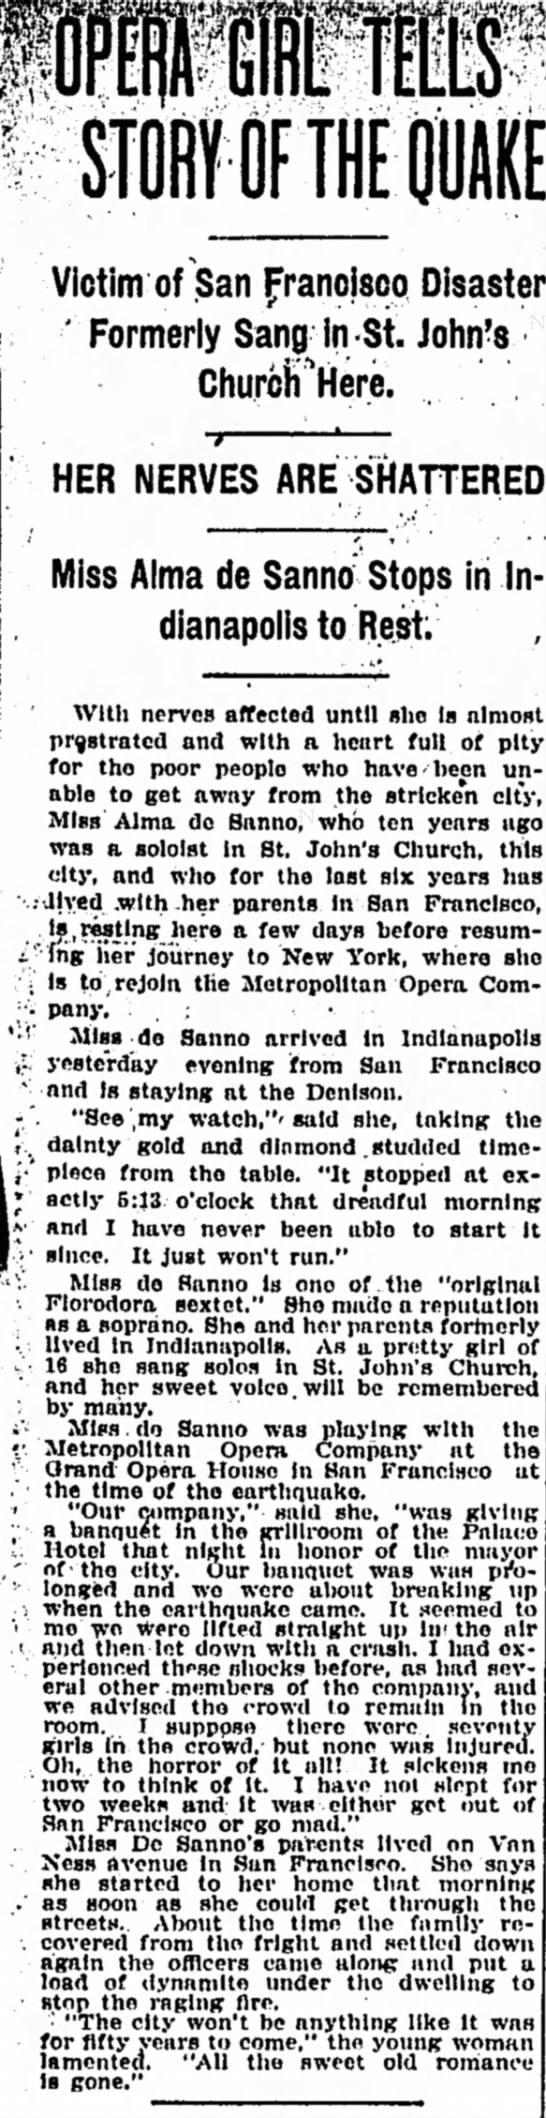 DeSanno, Alma The Indianapolis Star, Indianapolis, IN May 11 1906, Pg 7